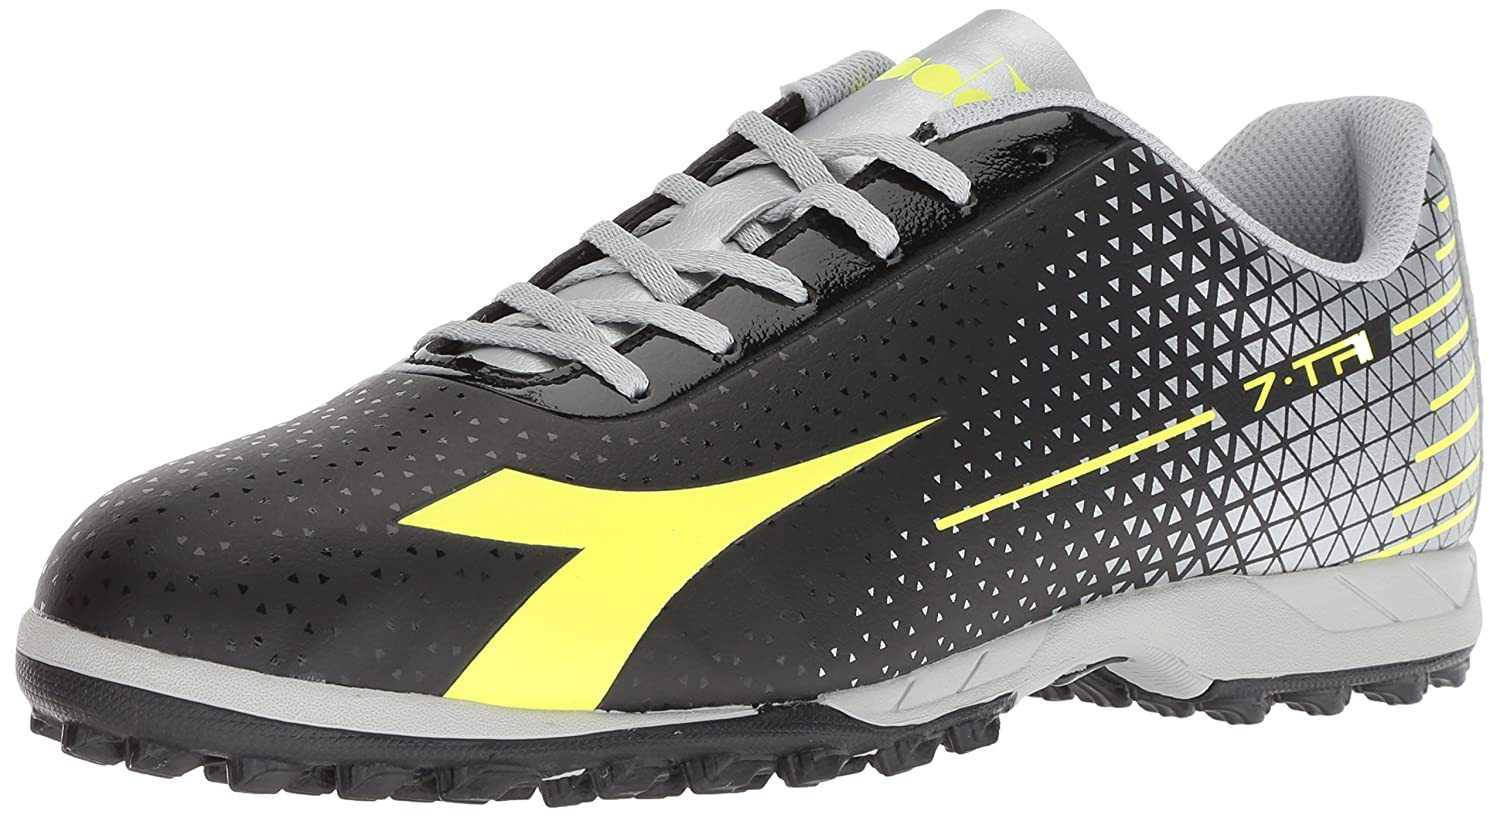 Diadora メンズ B076931NVN 11 D(M) US|Black/Flo Yellow/Silver Black/Flo Yellow/Silver 11 D(M) US